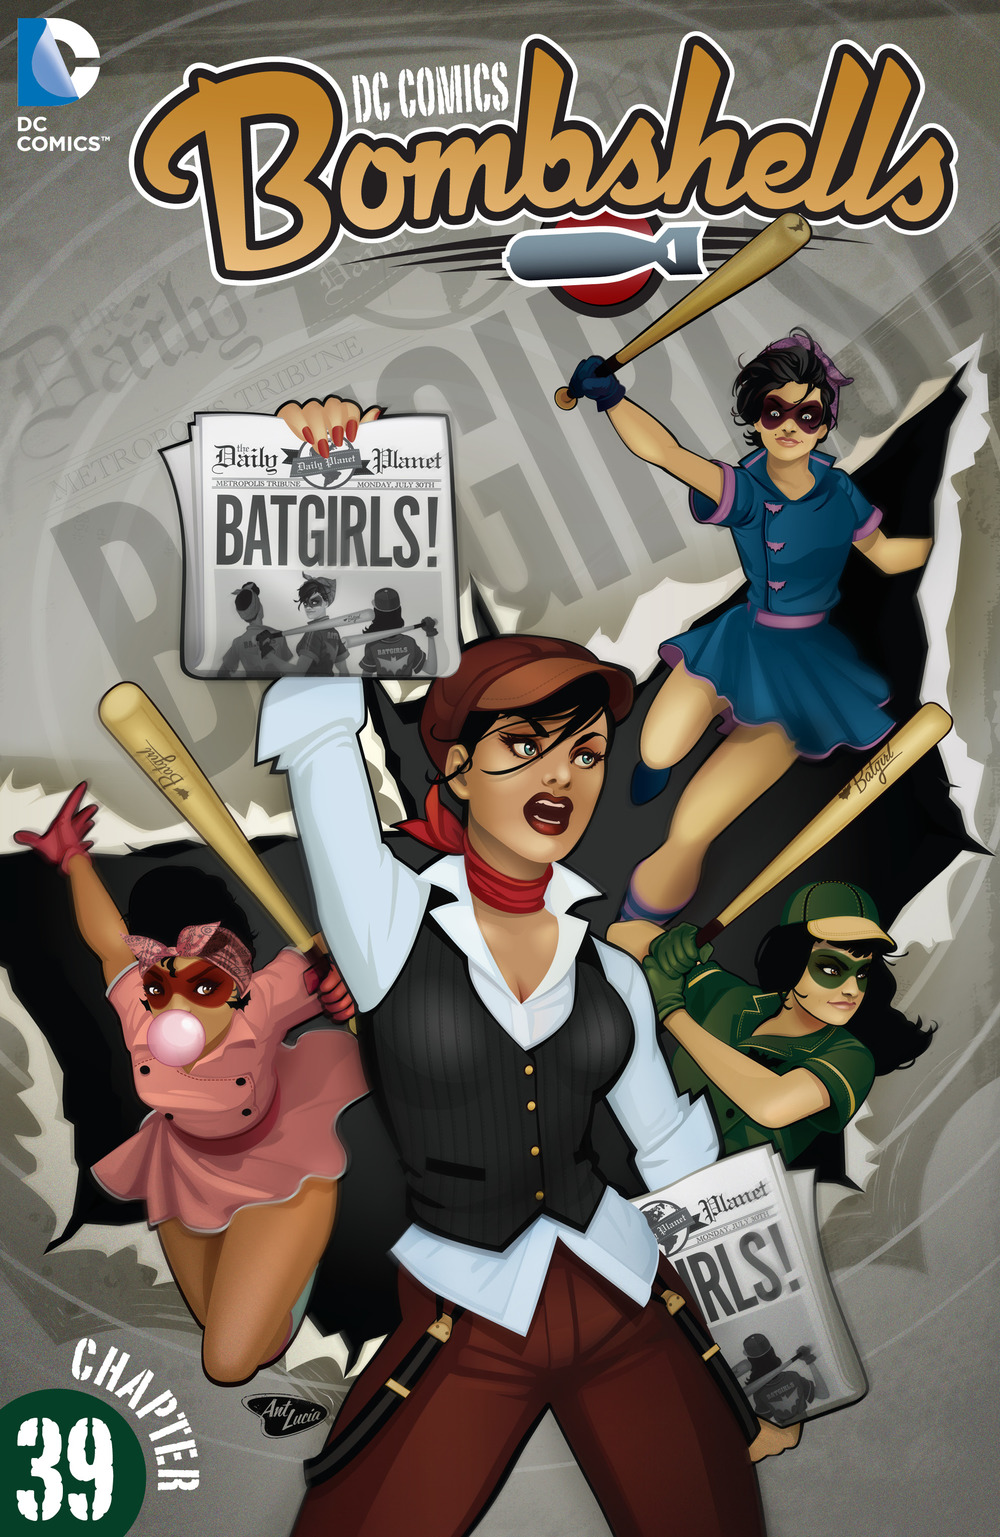 DCBombshells-39-SF-Cover.jpeg